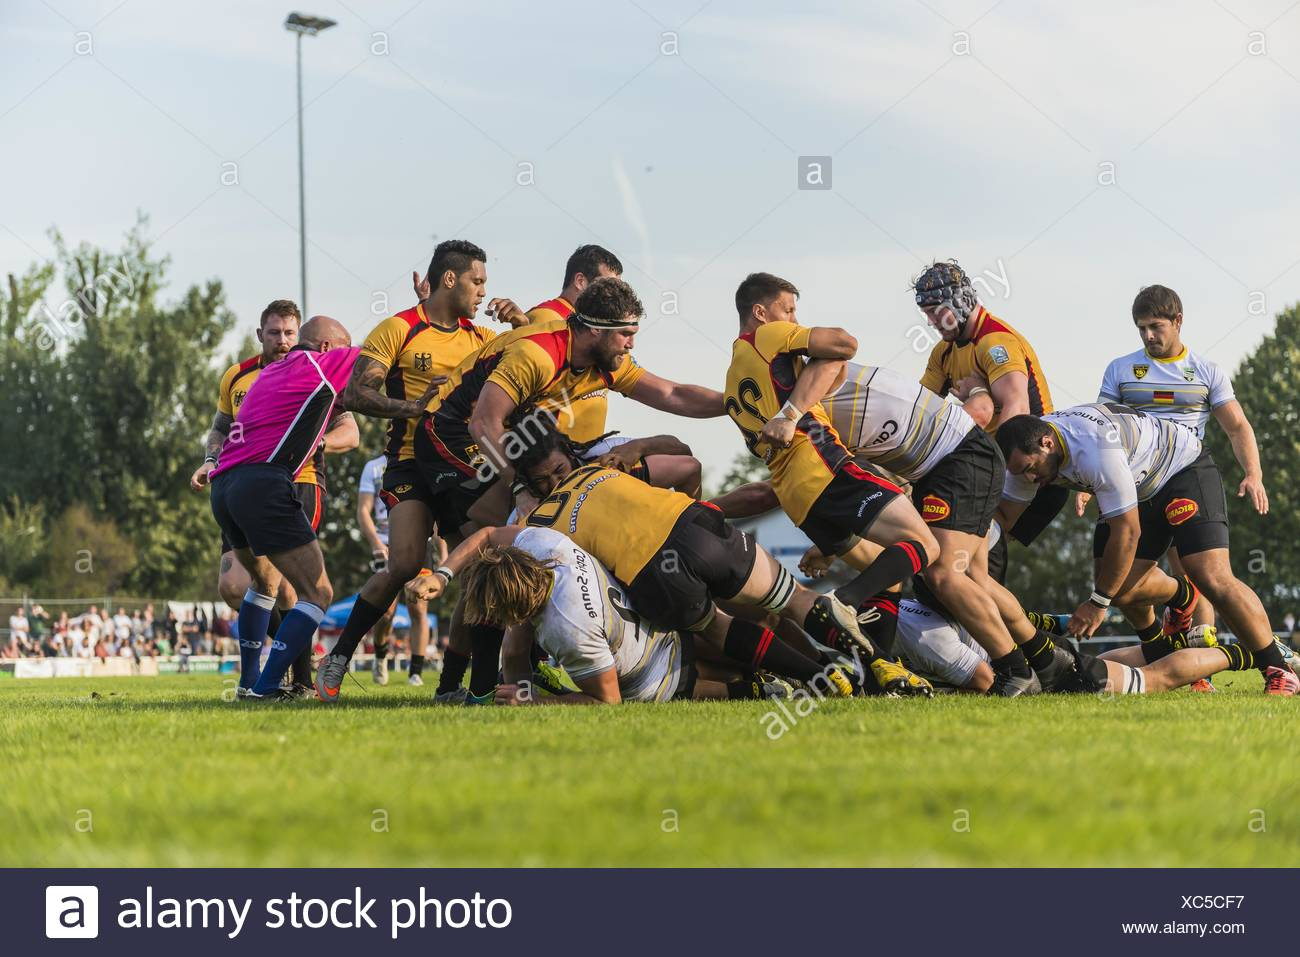 Tackling and ruck, friendly rugby match, Germany against La Rochelle, Fritz-Grunebaum-Sportpark, Heidelberg, Baden-Württemberg - Stock Image